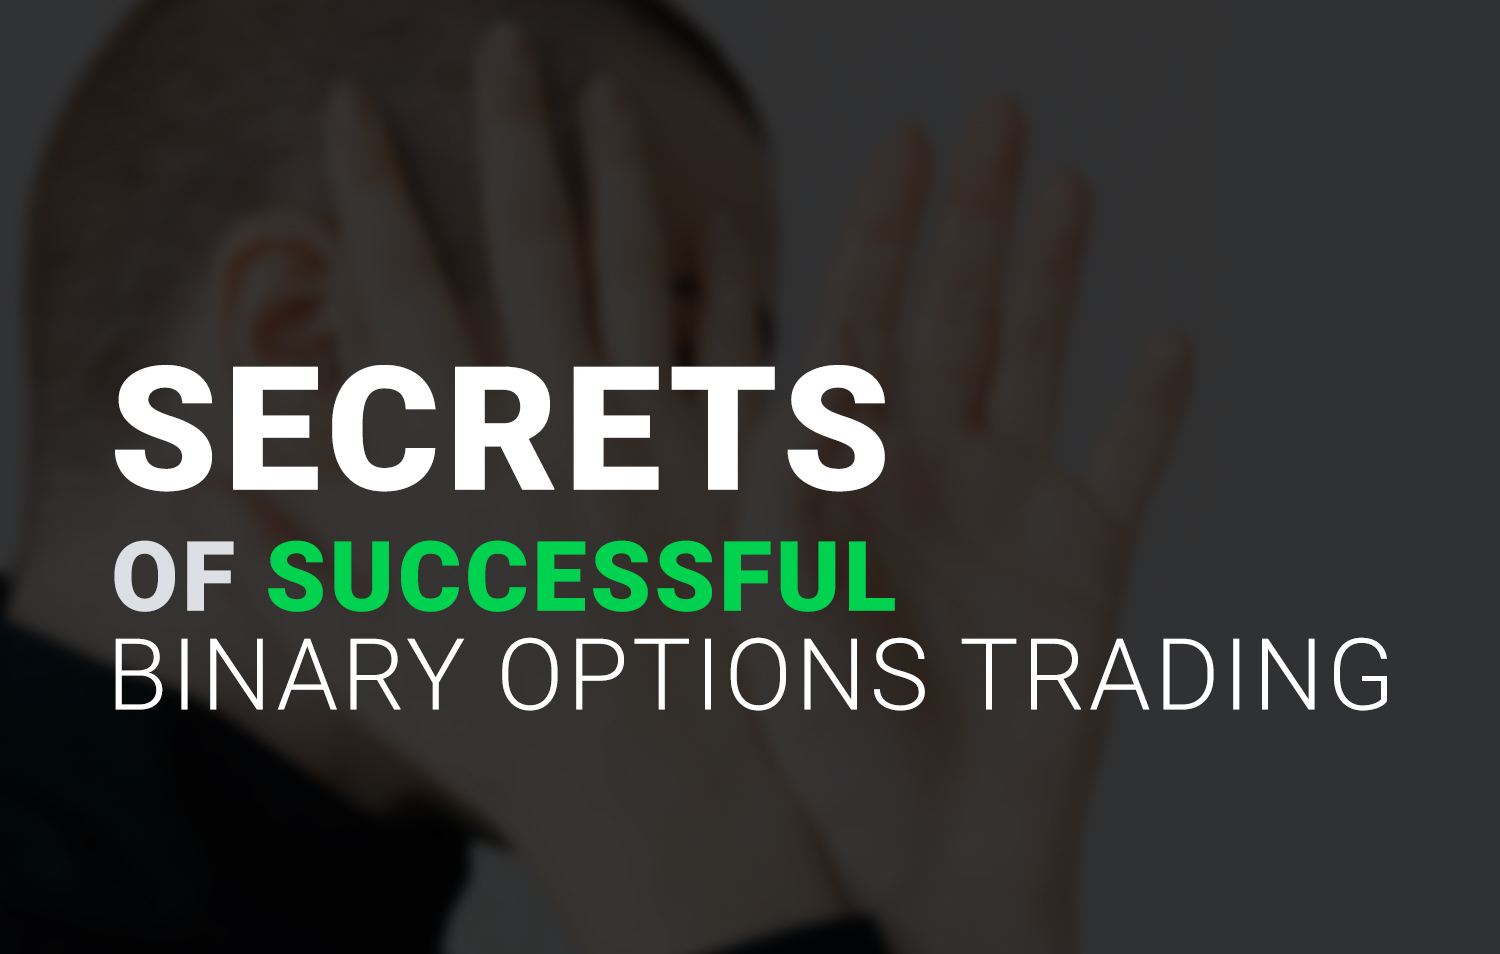 Secrets of successful Binary Options trading